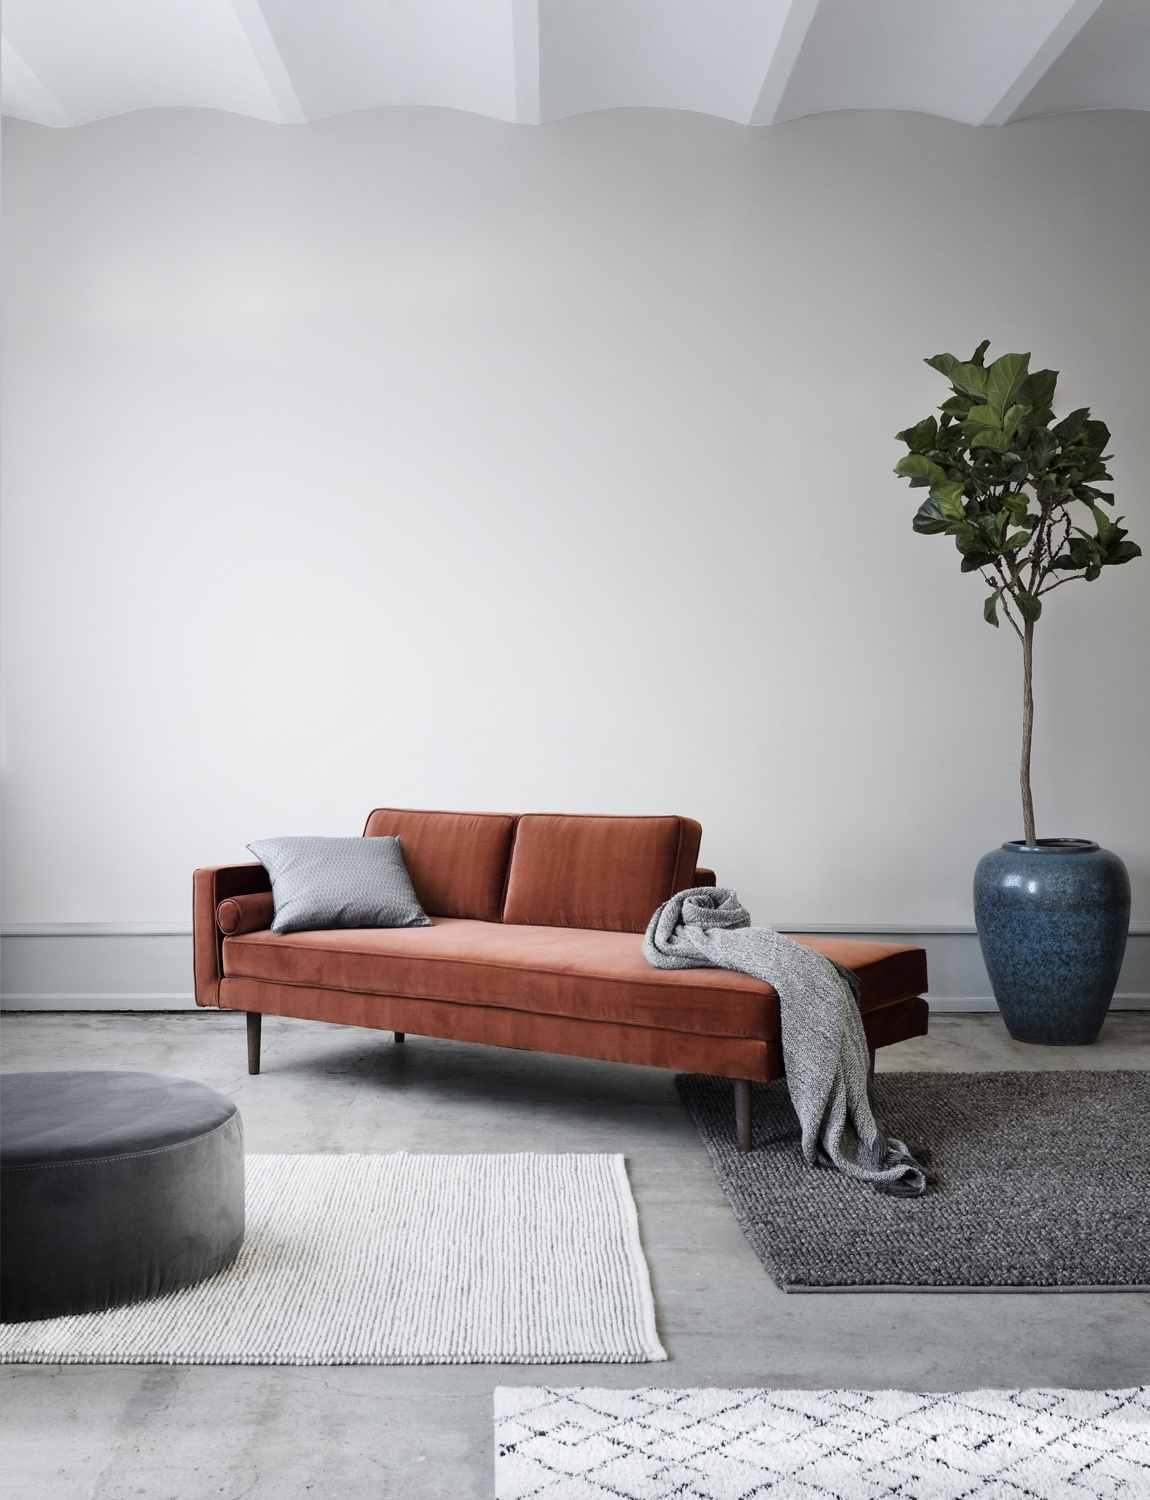 Wind pouf and chaise longue